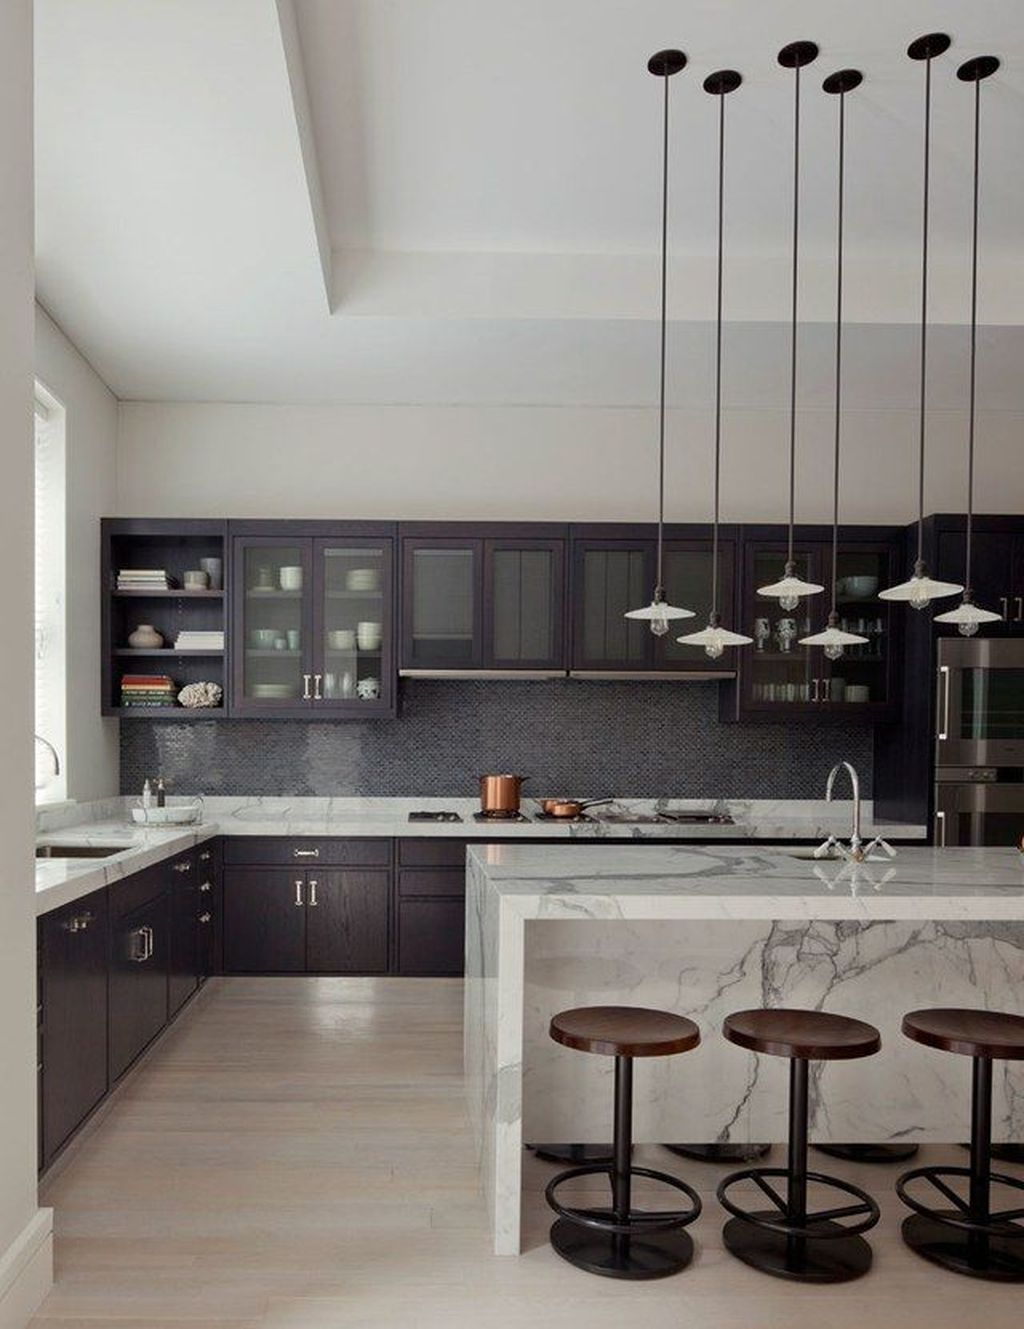 Inspirations cocinas pinterest kitchen kitchen design and